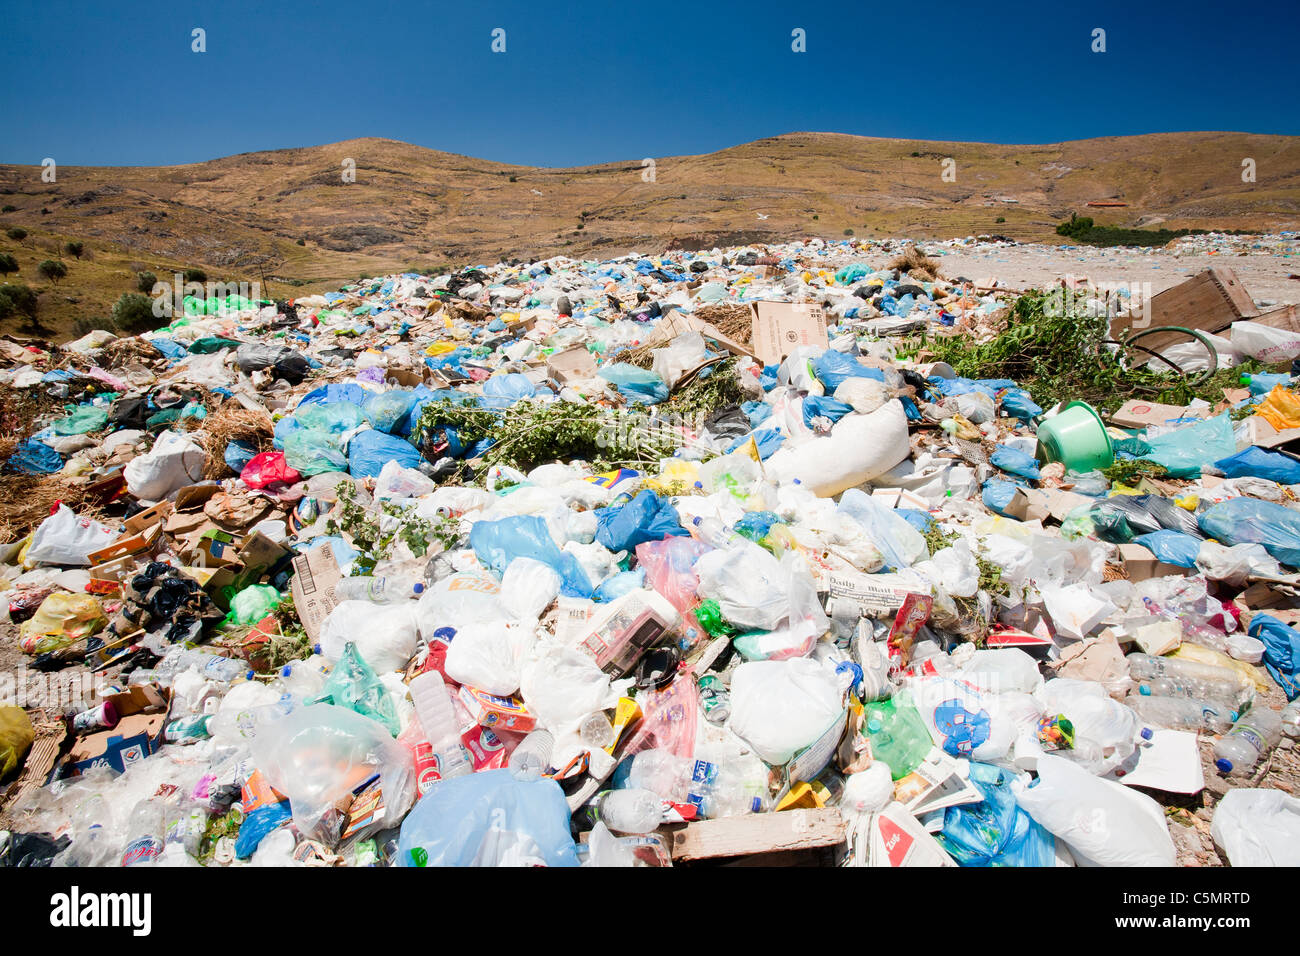 A landfill site in Eresos, Lesbos, Greece. As many islands, rubbish is a problem with no recycling taking place. - Stock Image